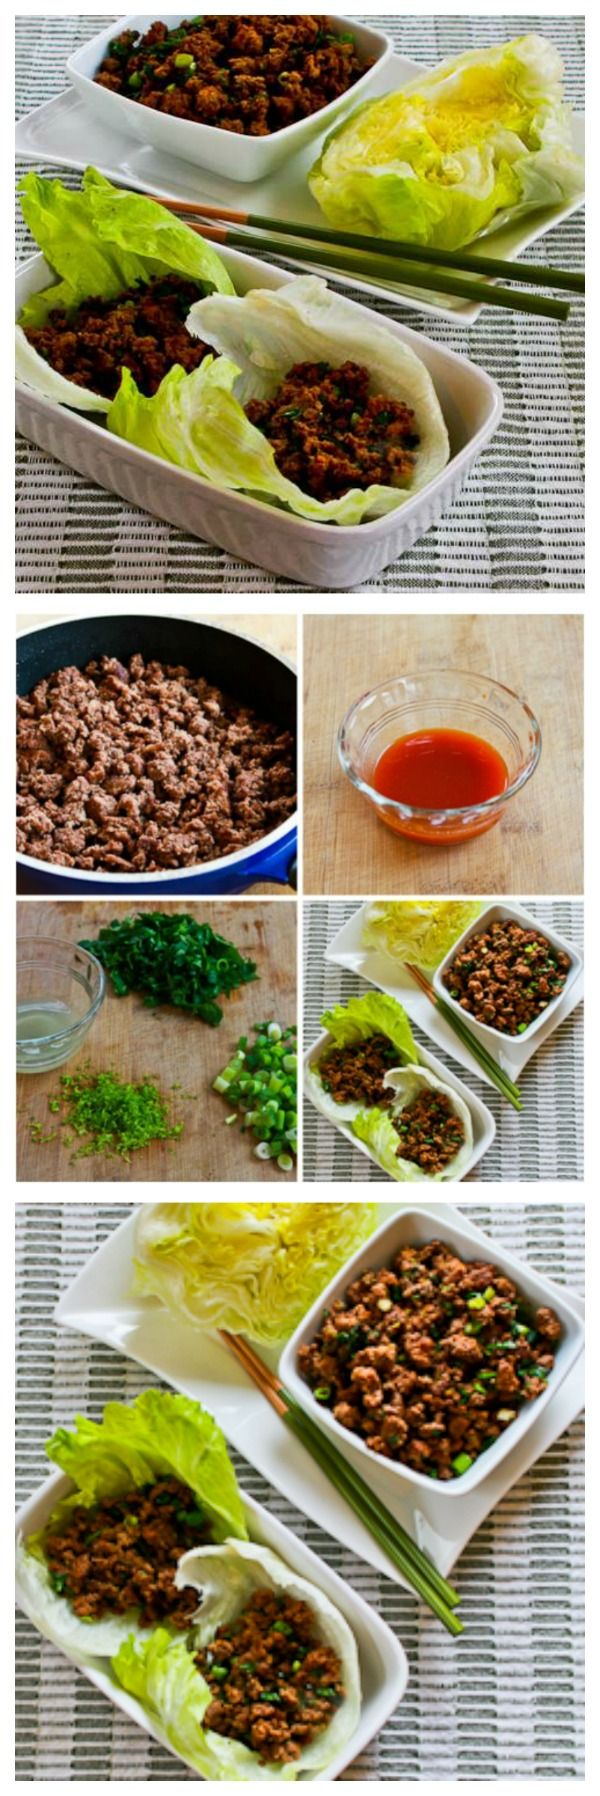 Quick Sriracha Beef Lettuce Wraps are a delicious low-carb and gluten-free meal that's just spicy enough to be interesting.  [found on KalynsKitchen.com] #DeliciouslyHealthyLowCarb